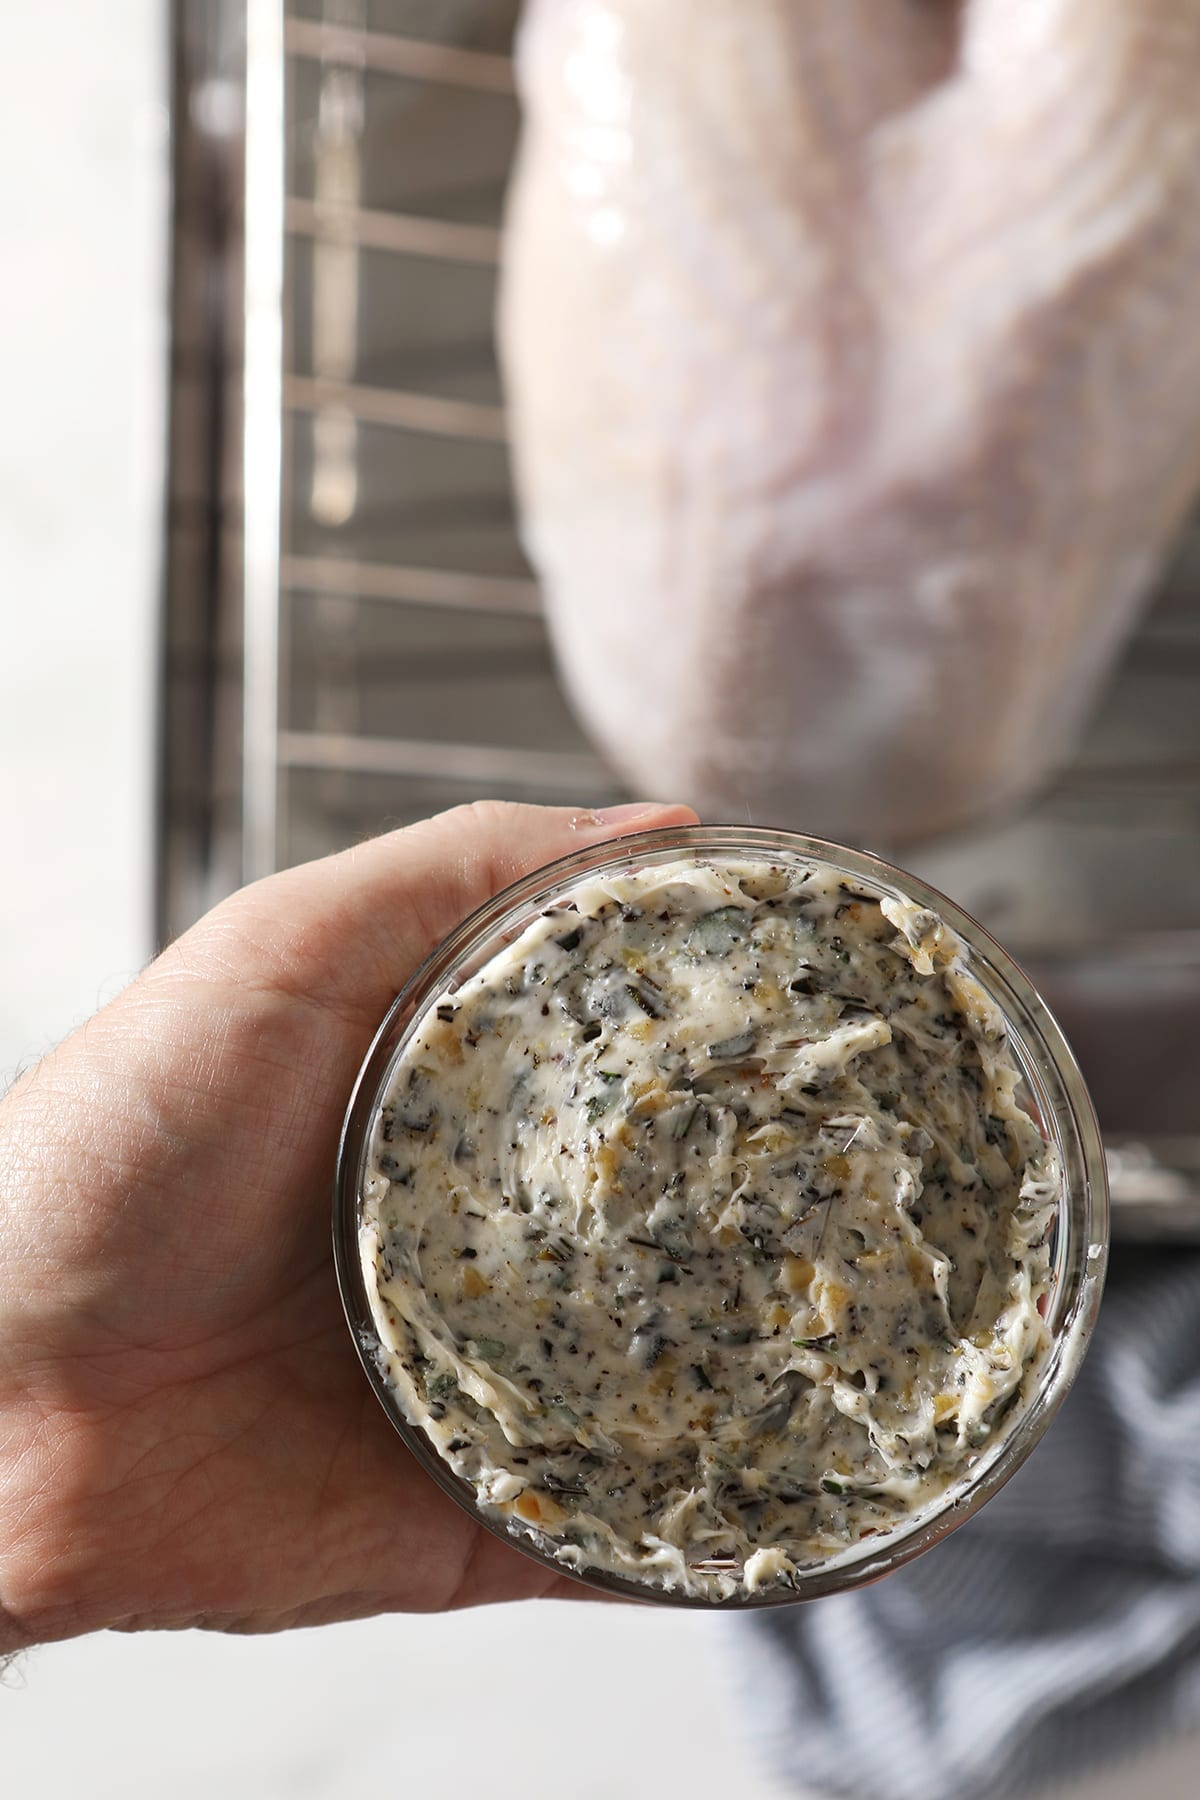 A hand holds a small glass bowl of Rosemary Garlic Herb Butter above a raw turkey breast in a roasting pan